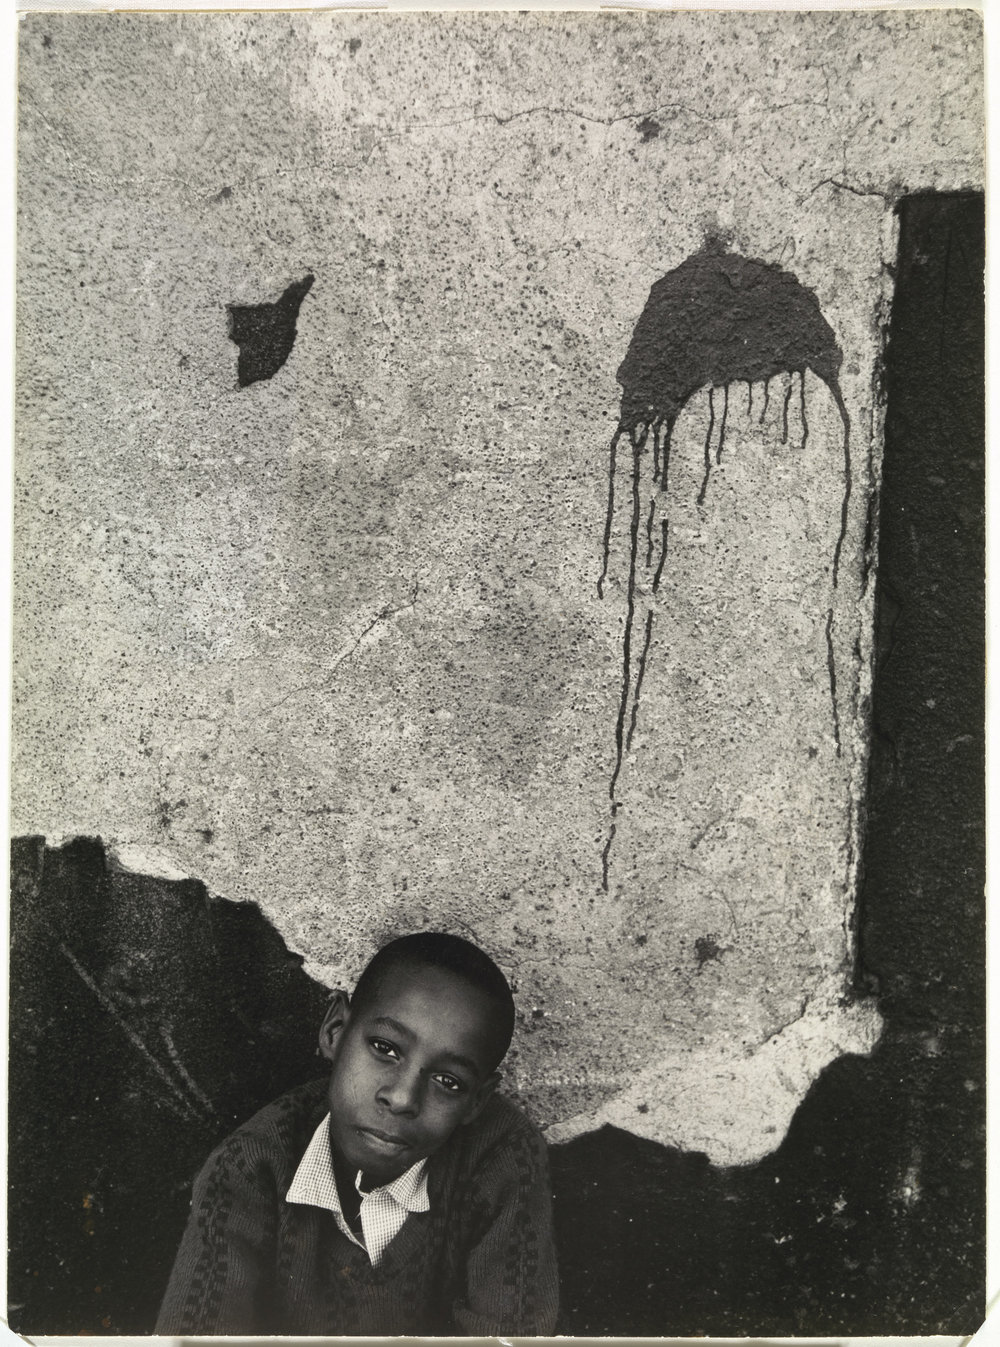 Boy with paint splatter,  Louis Draper (American, 1935-2002), gelatin silver print, 9 1/16 x 6 13/16 in. Virginia Museum of Fine Arts; Arthur and Margaret Glasgow Endowment.  Image © Louis H. Draper Preservation Trust